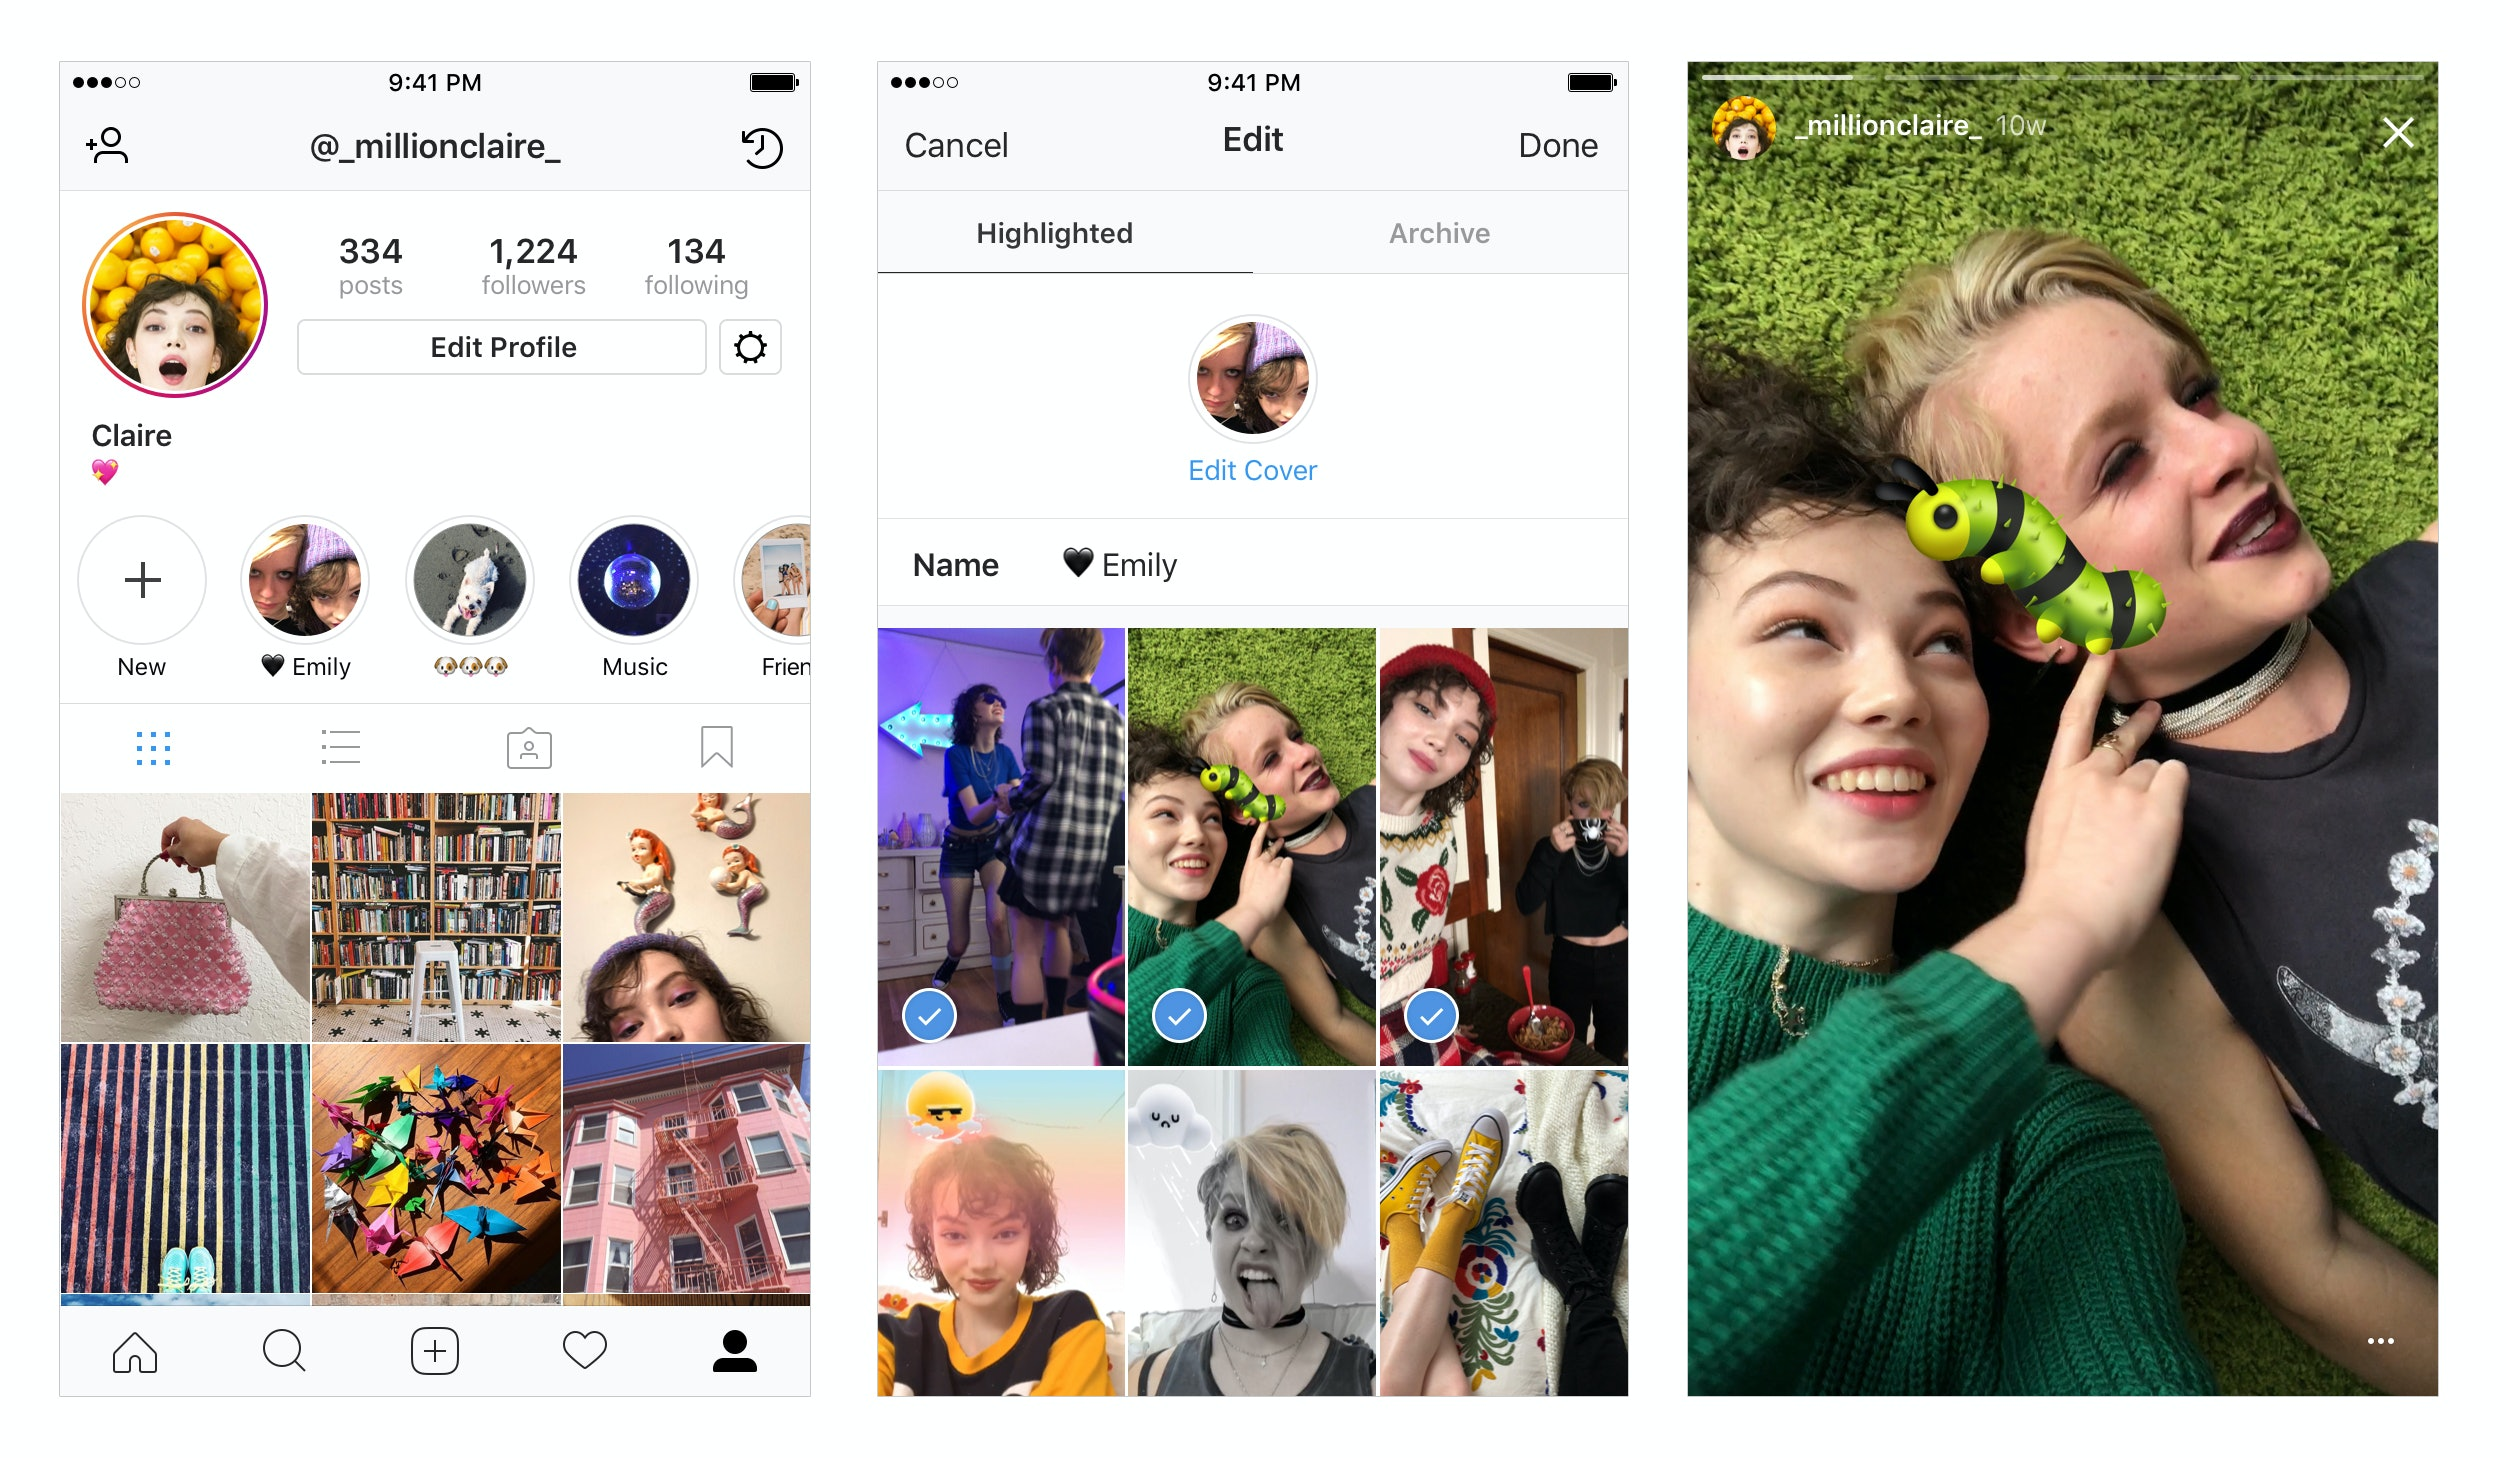 Instagram updating profiles with new Stories features, Archive and Highlights